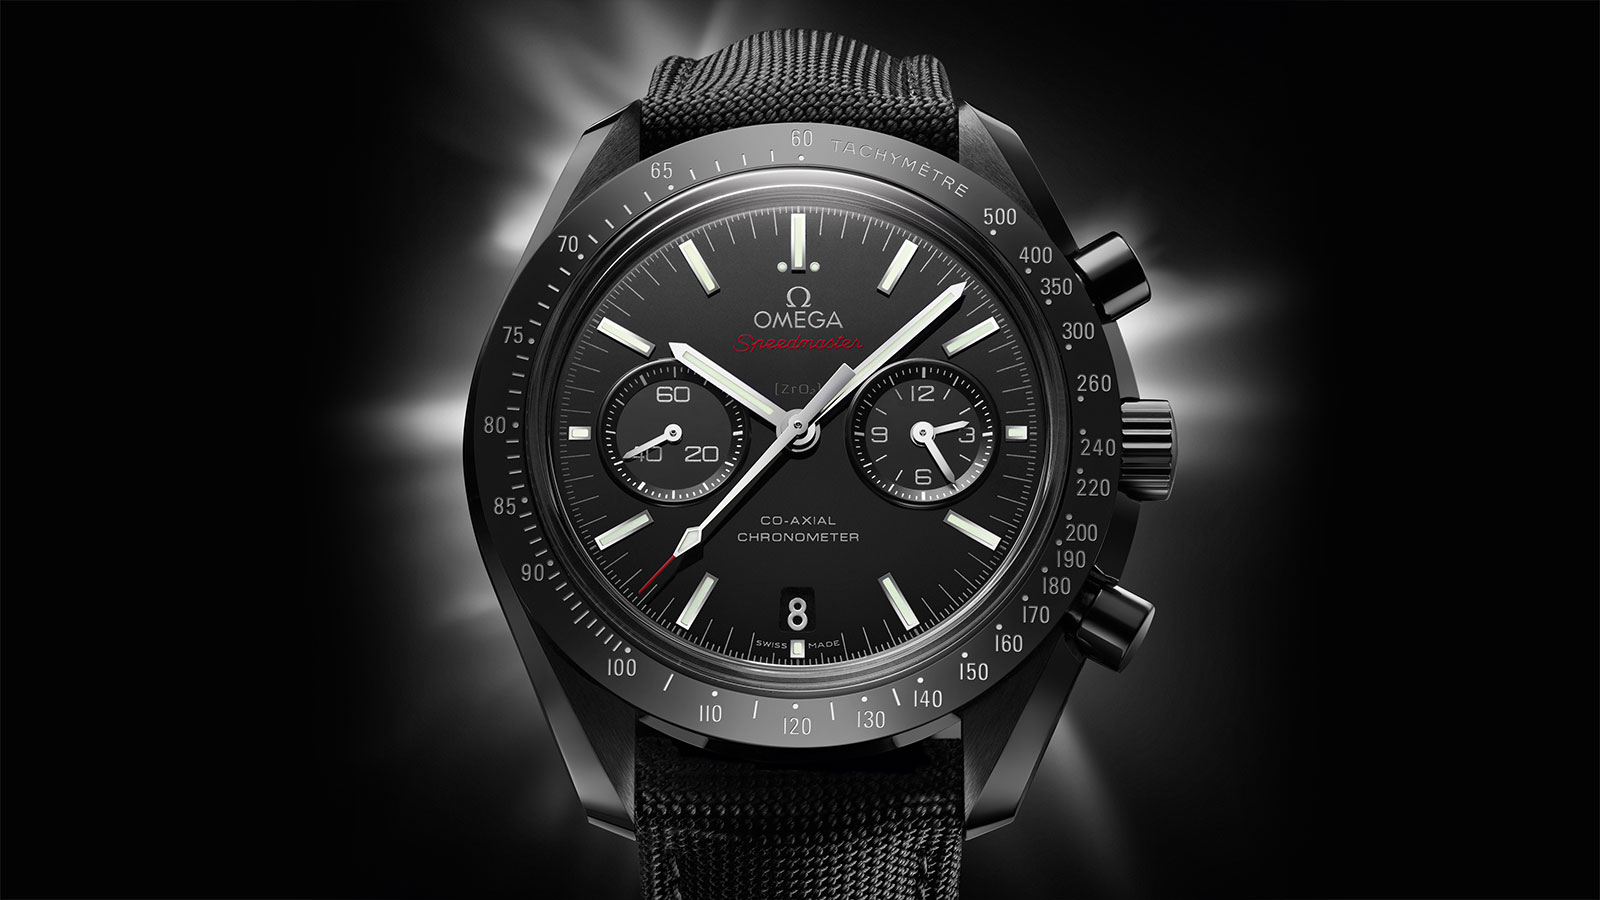 Speedmaster Moonwatch Moonwatch Omega Co‑Axial Chronograph 44.25 mm Watch - 311.92.44.51.01.003